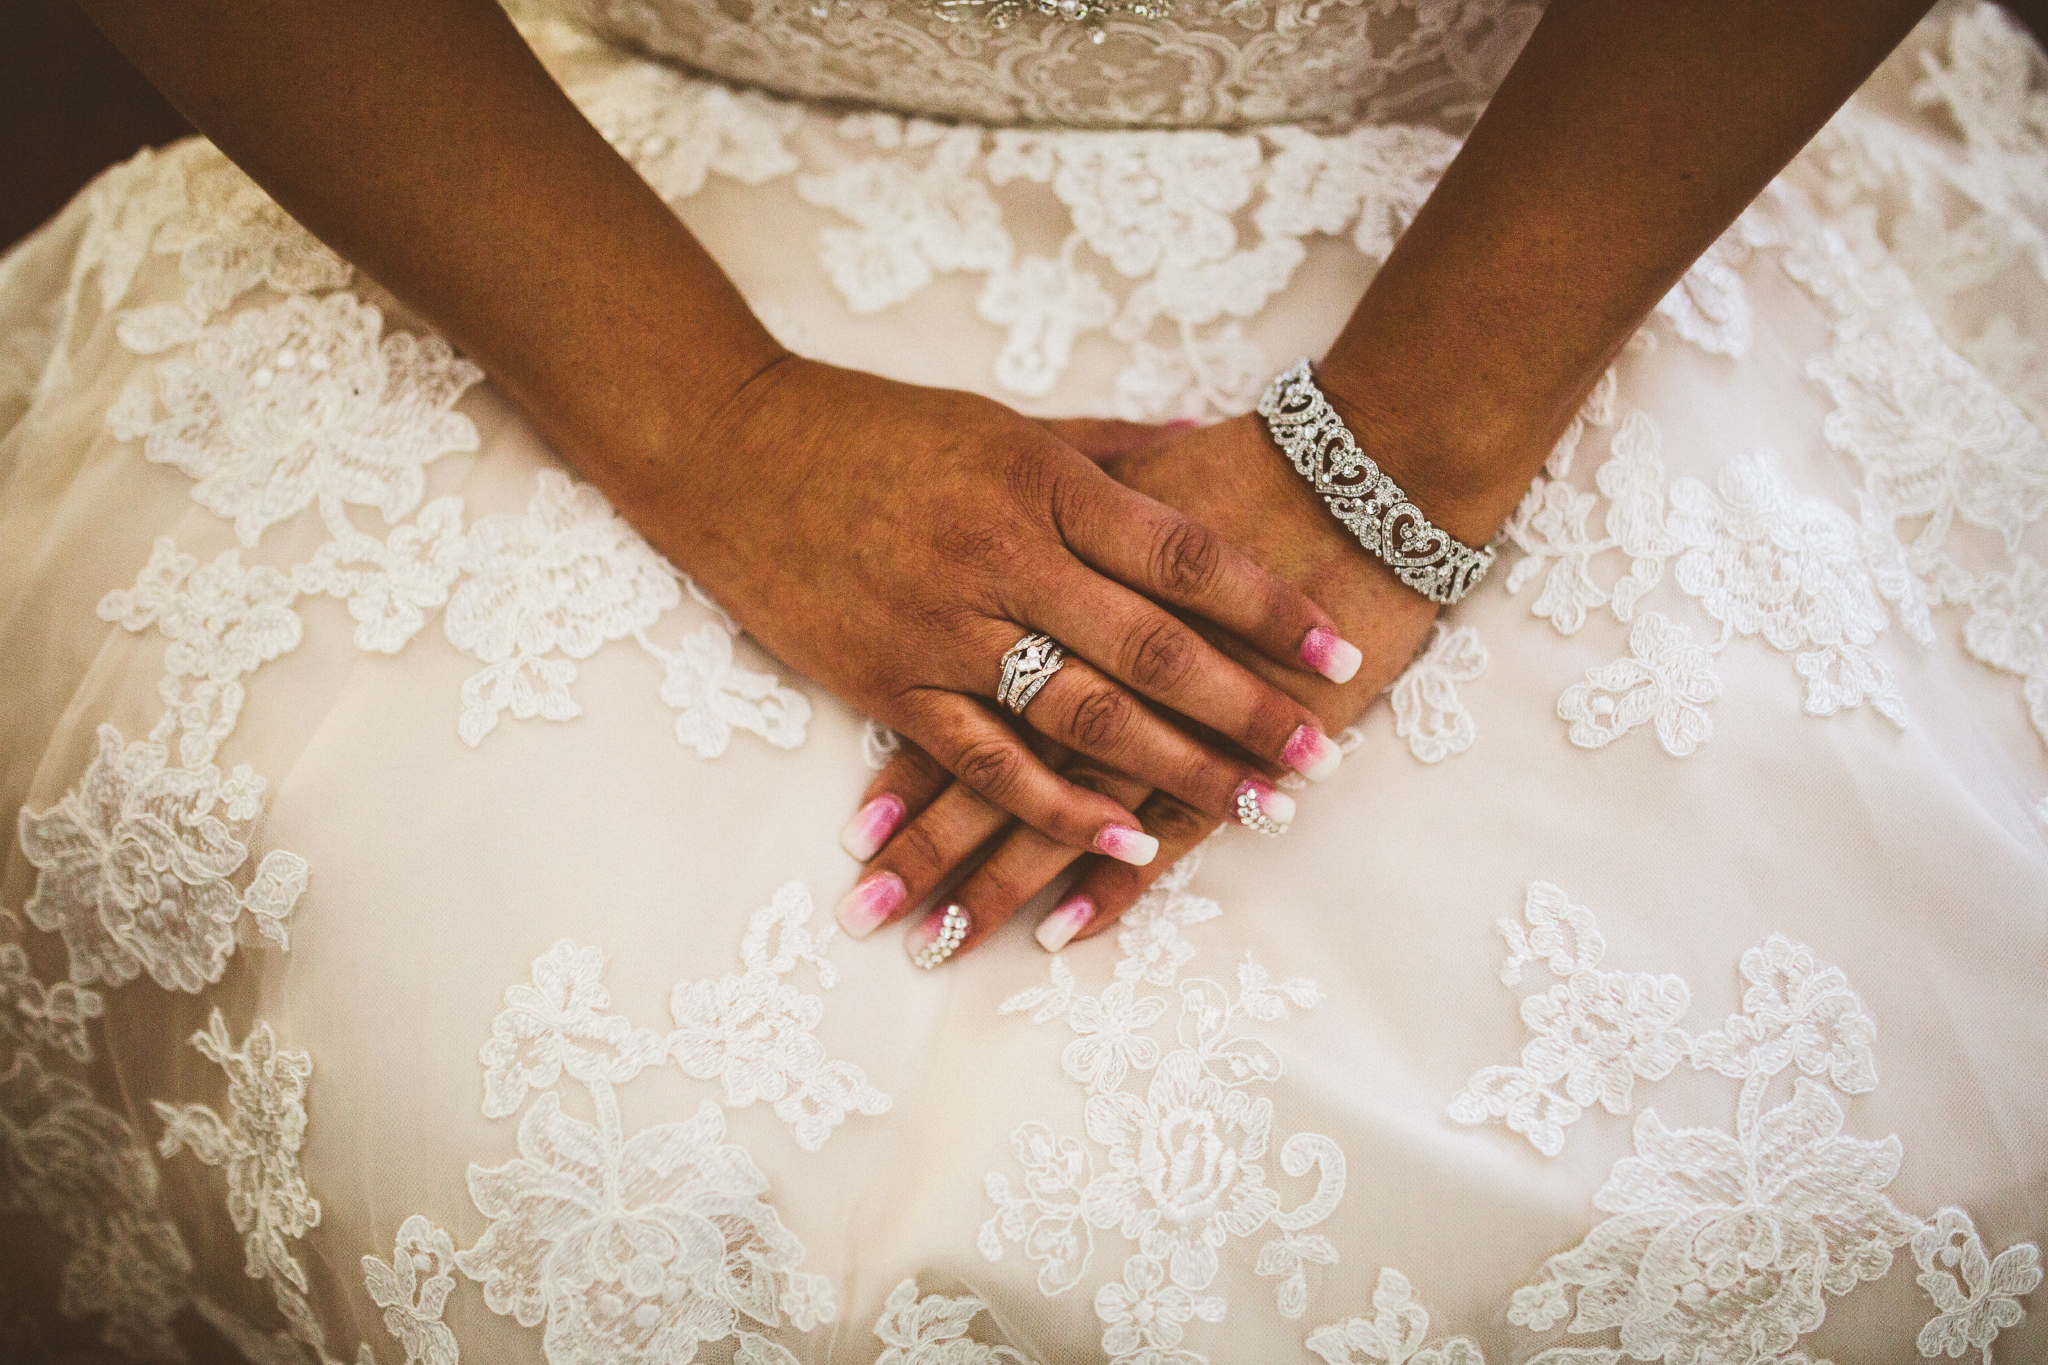 san diego wedding   photographer   bride's hands with rings and bracelet